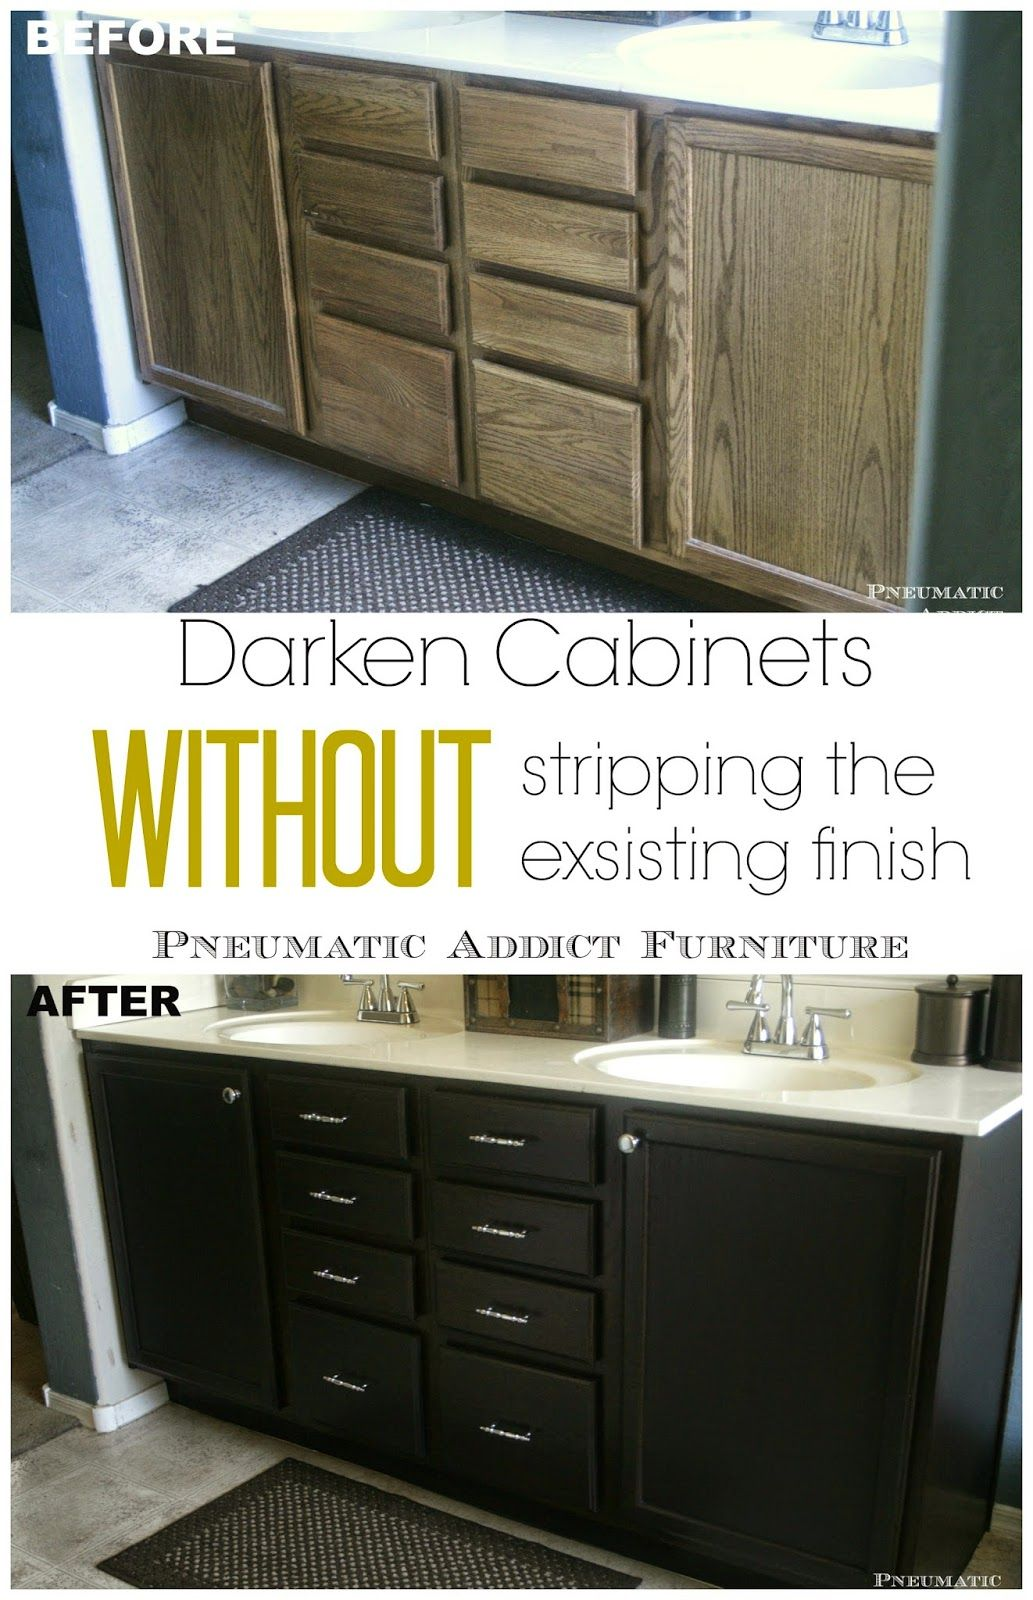 Darken Cabinets Without Stripping The Existing Finish (Someday Crafts) Gallery